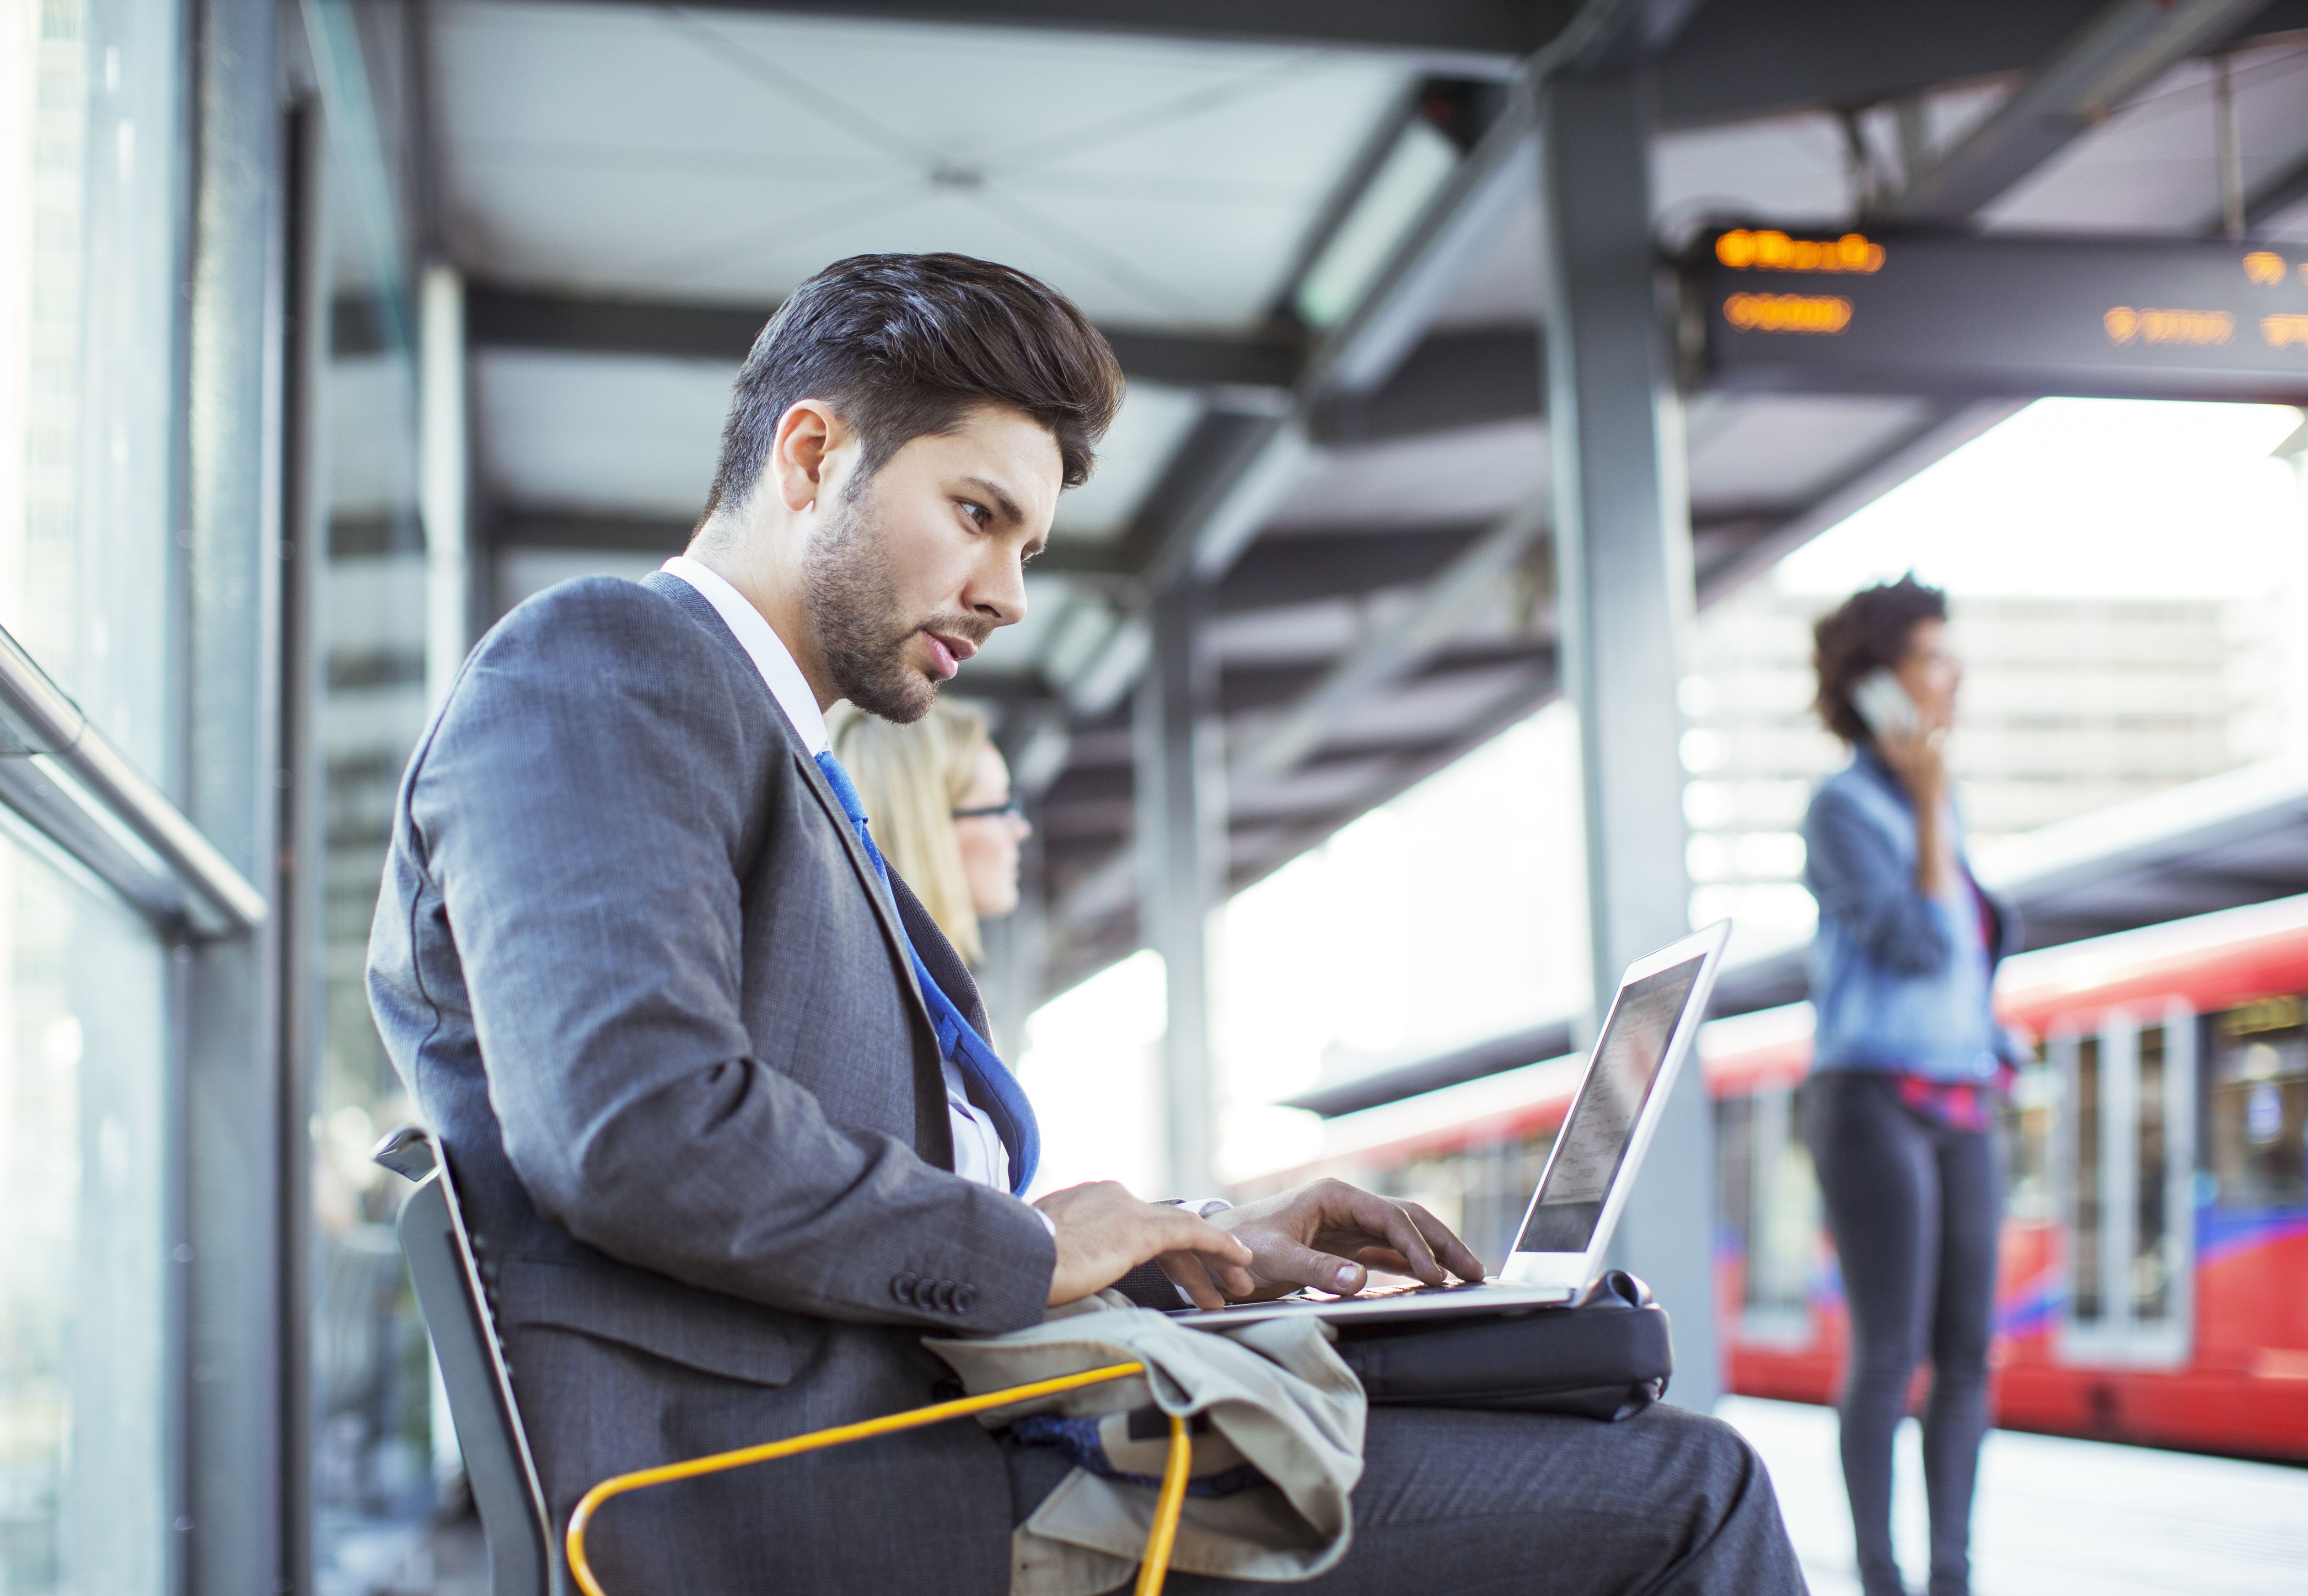 How to mention relocation in a cover letter businessman using laptop at train station madrichimfo Image collections